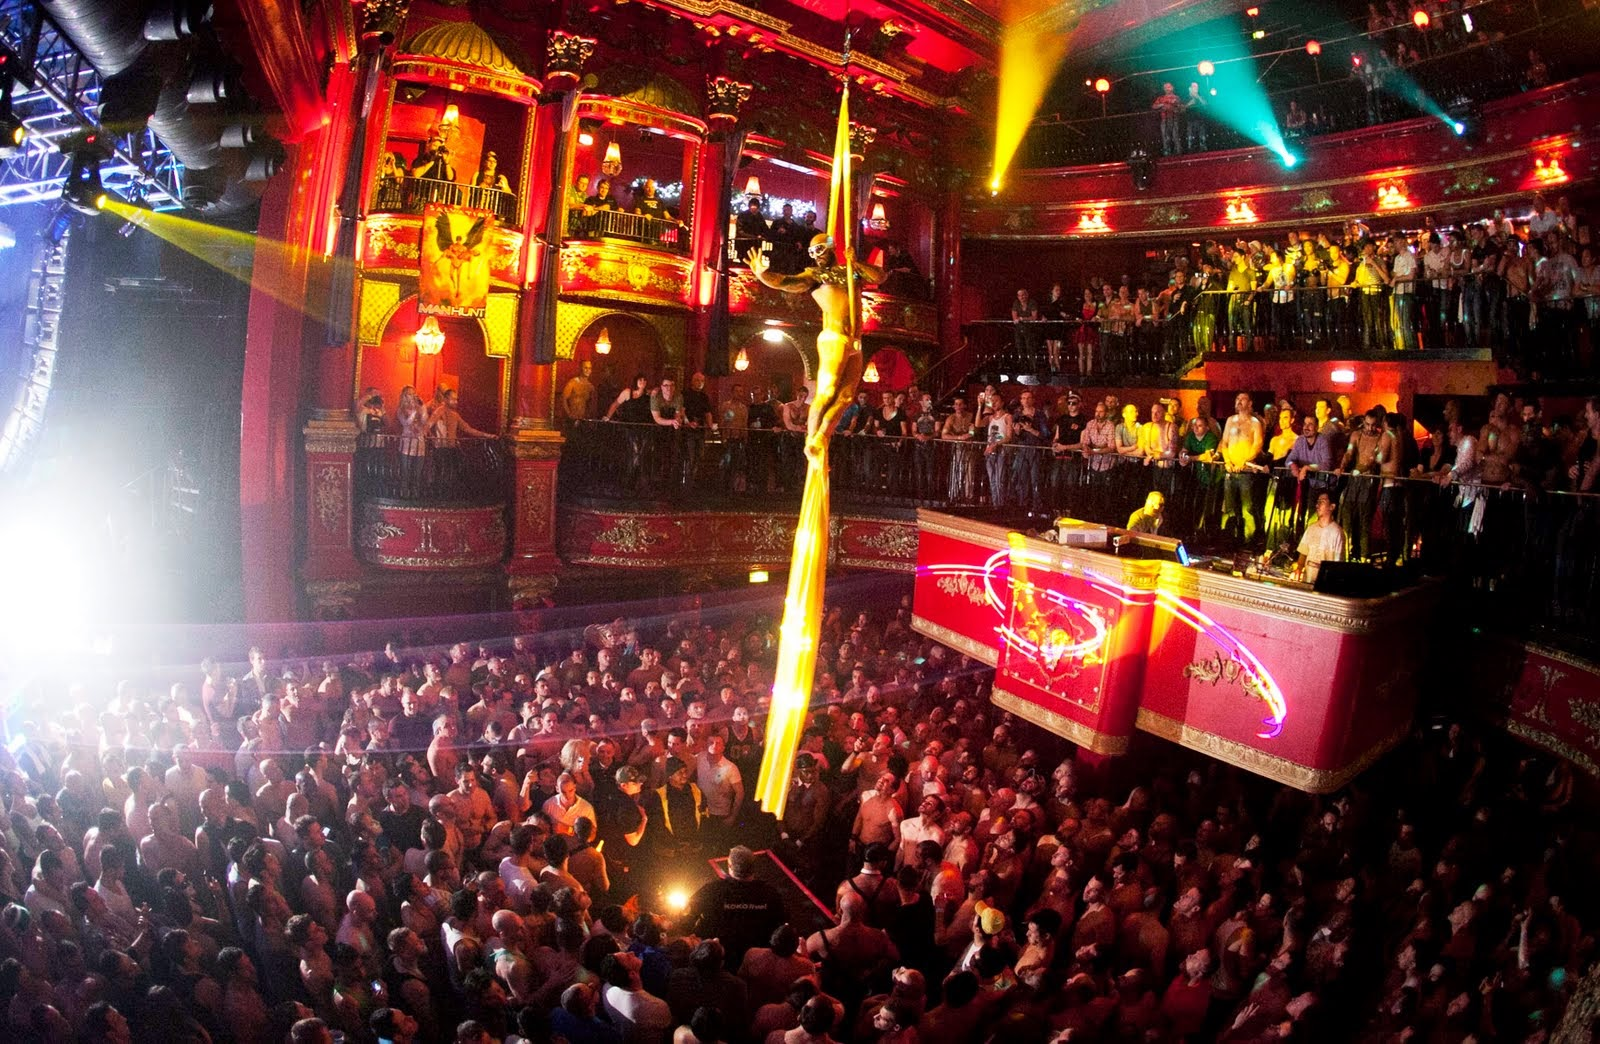 oneriyoruz.biz, koko club london